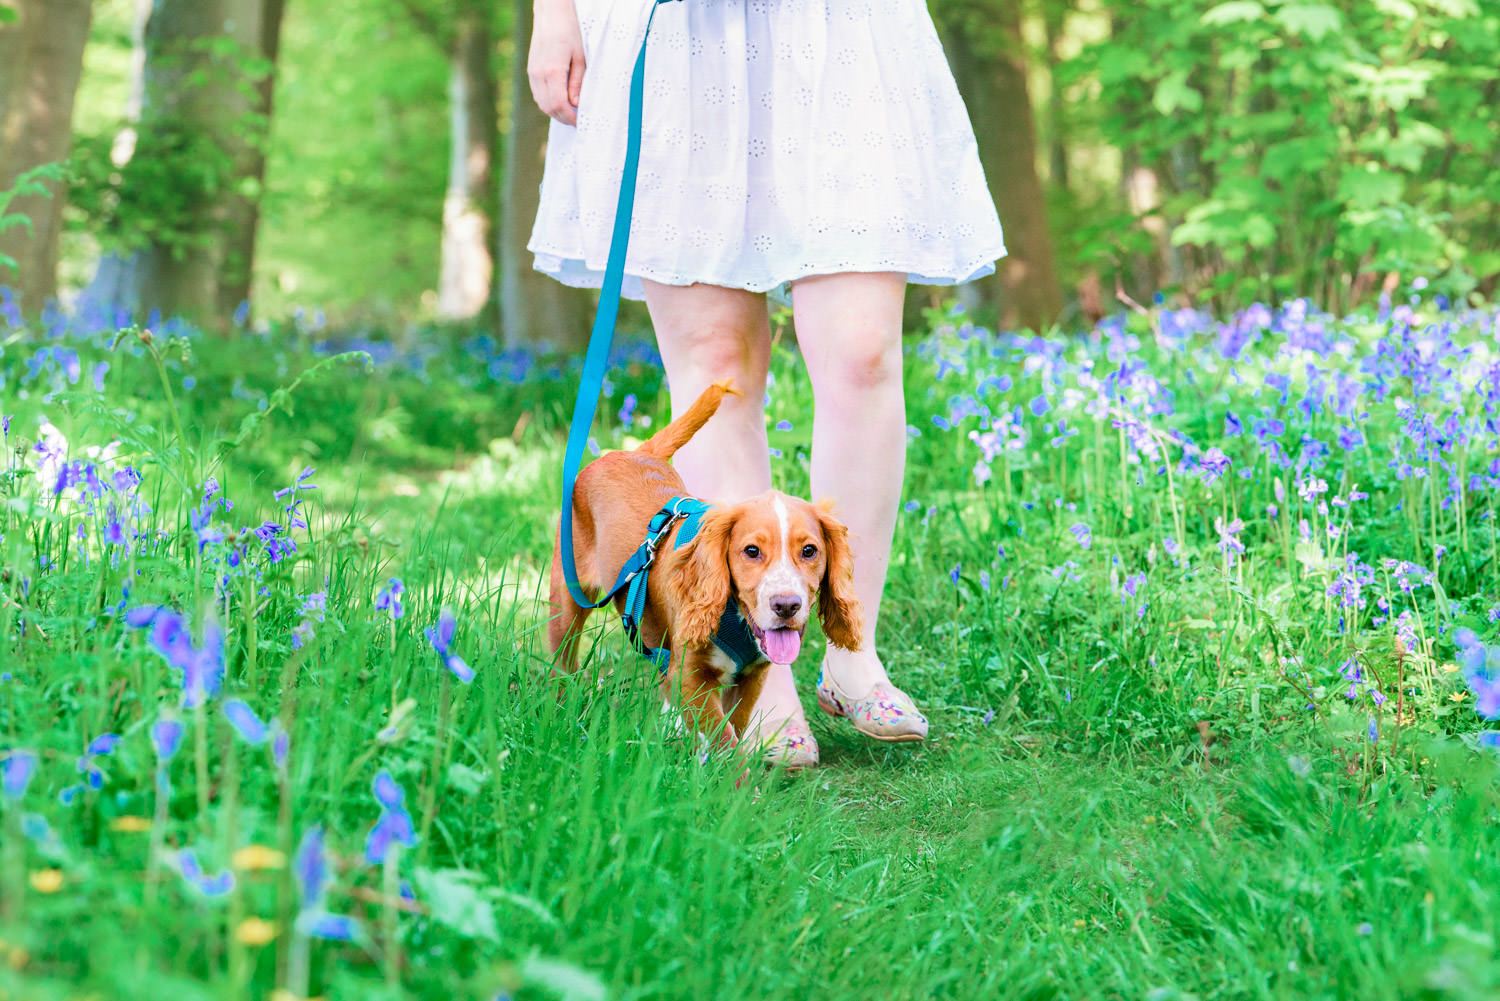 Dog photographer captures image of puppy walking with it's owner through bluebells